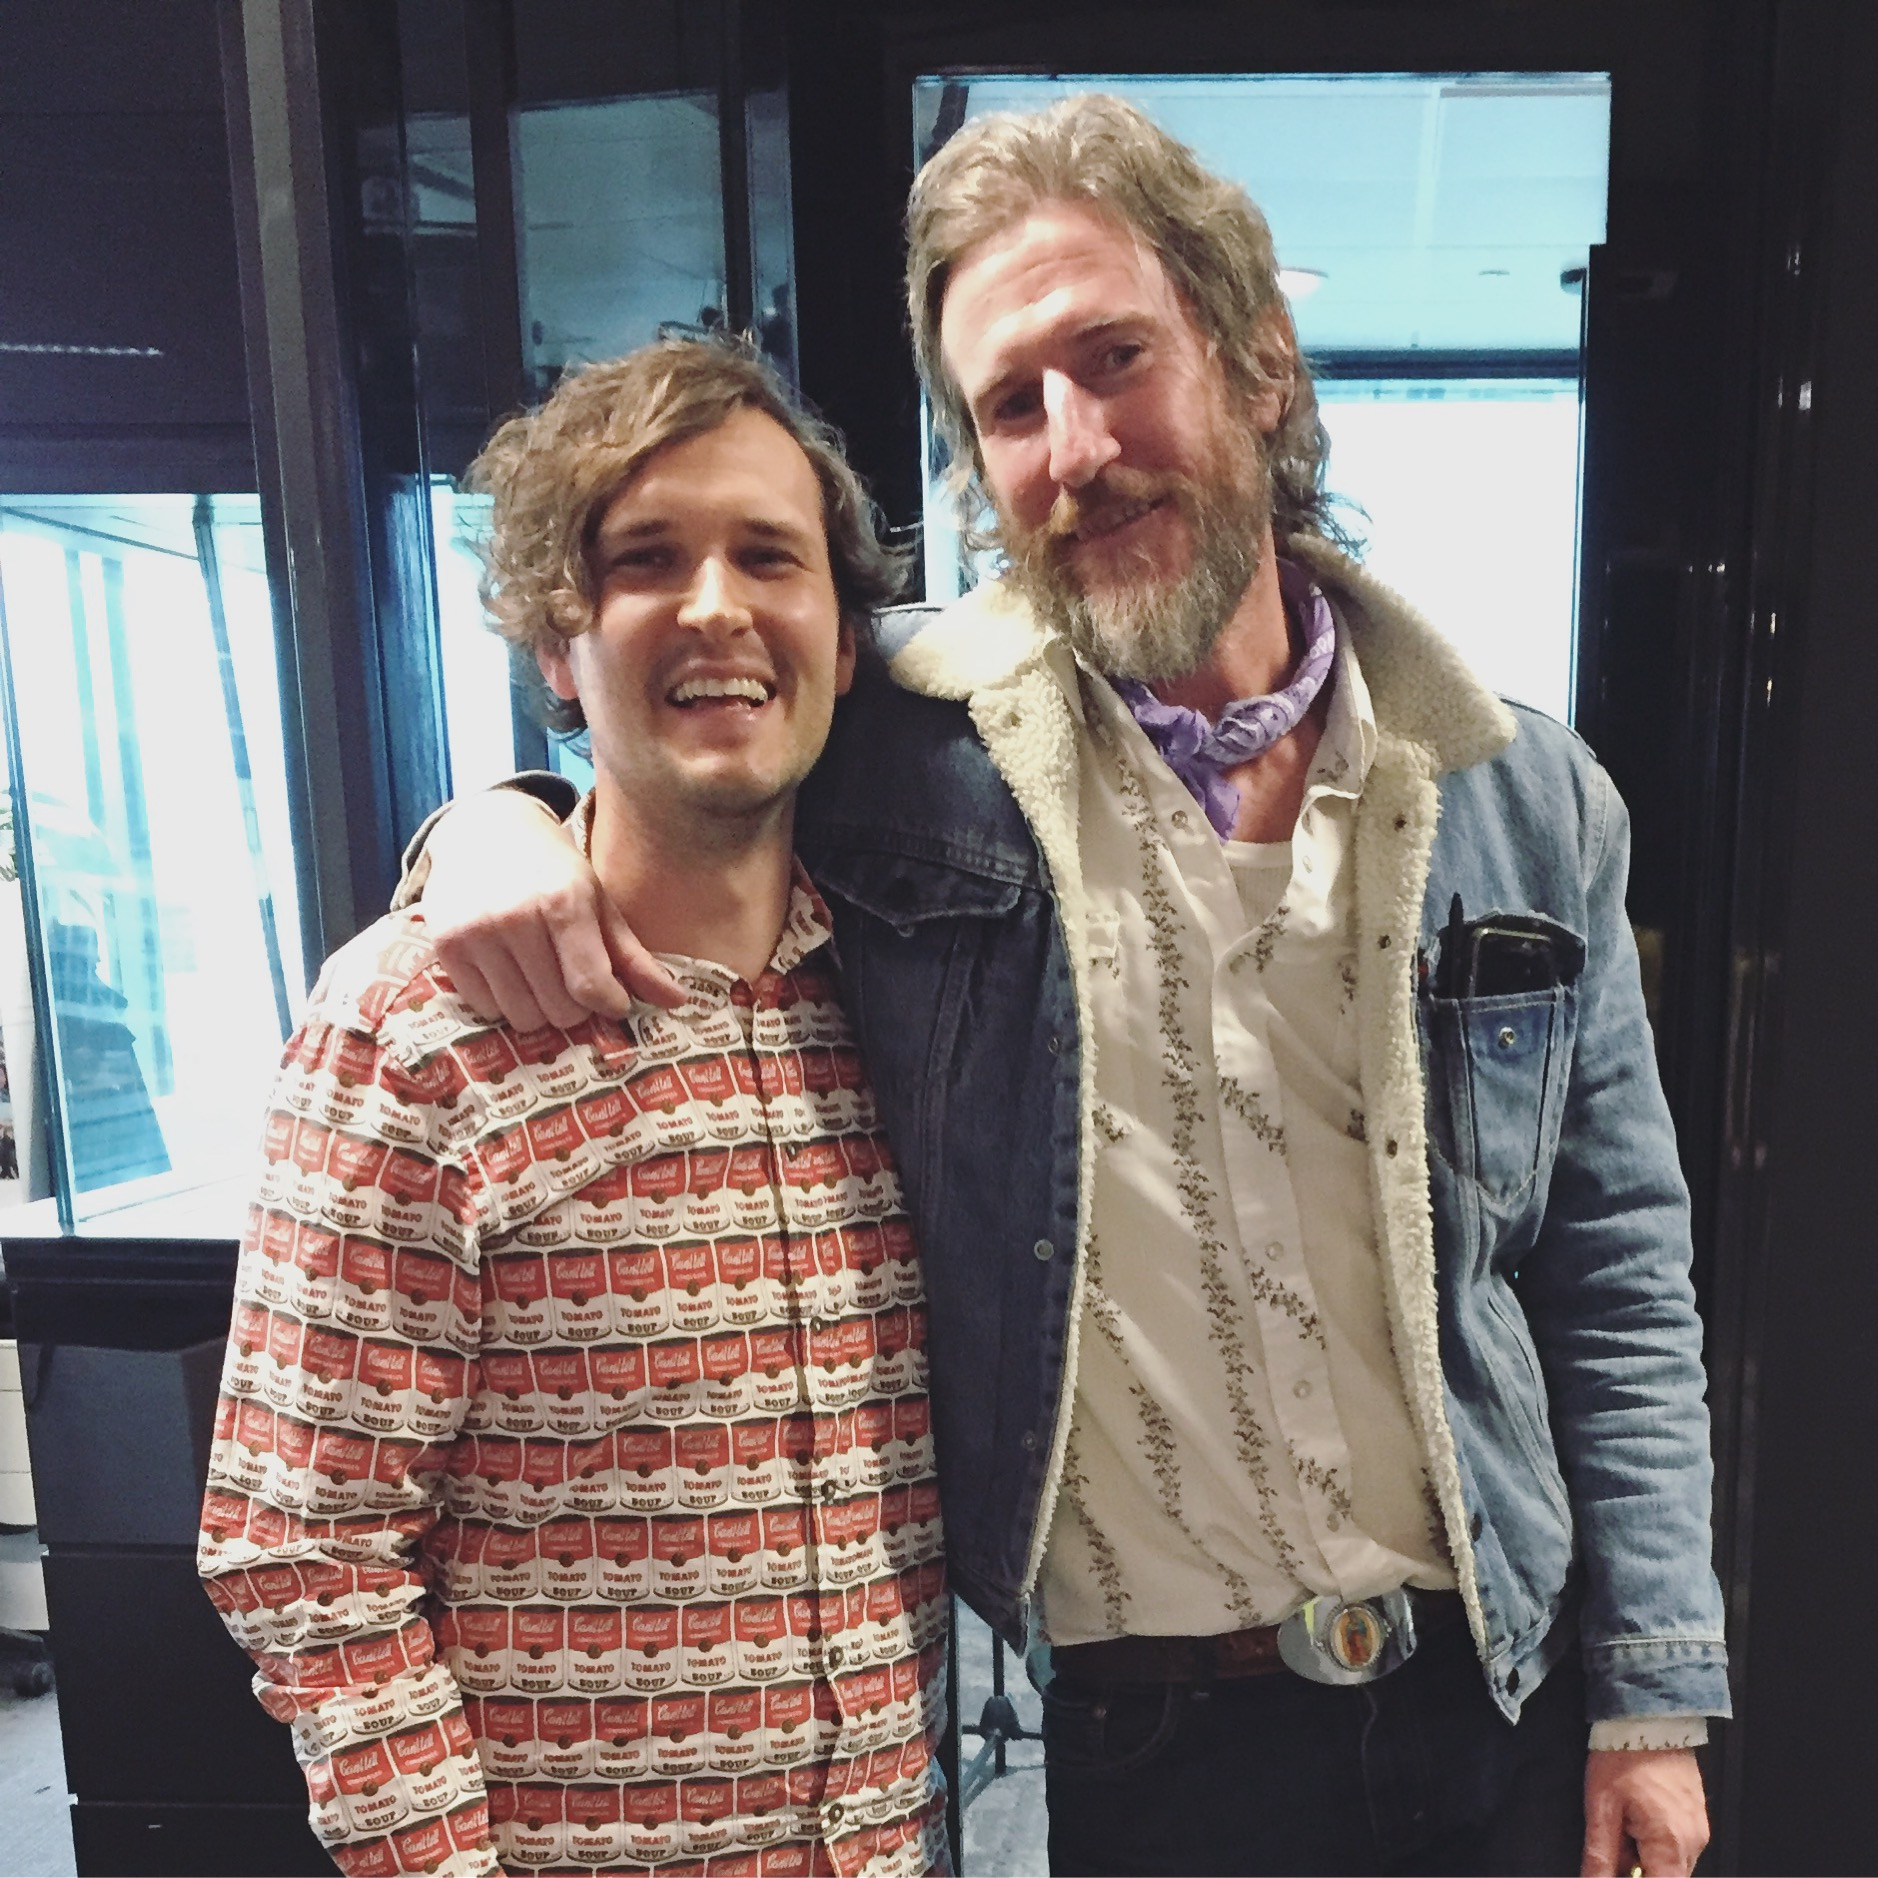 Tim Rogers Of You Am I and I.JPG